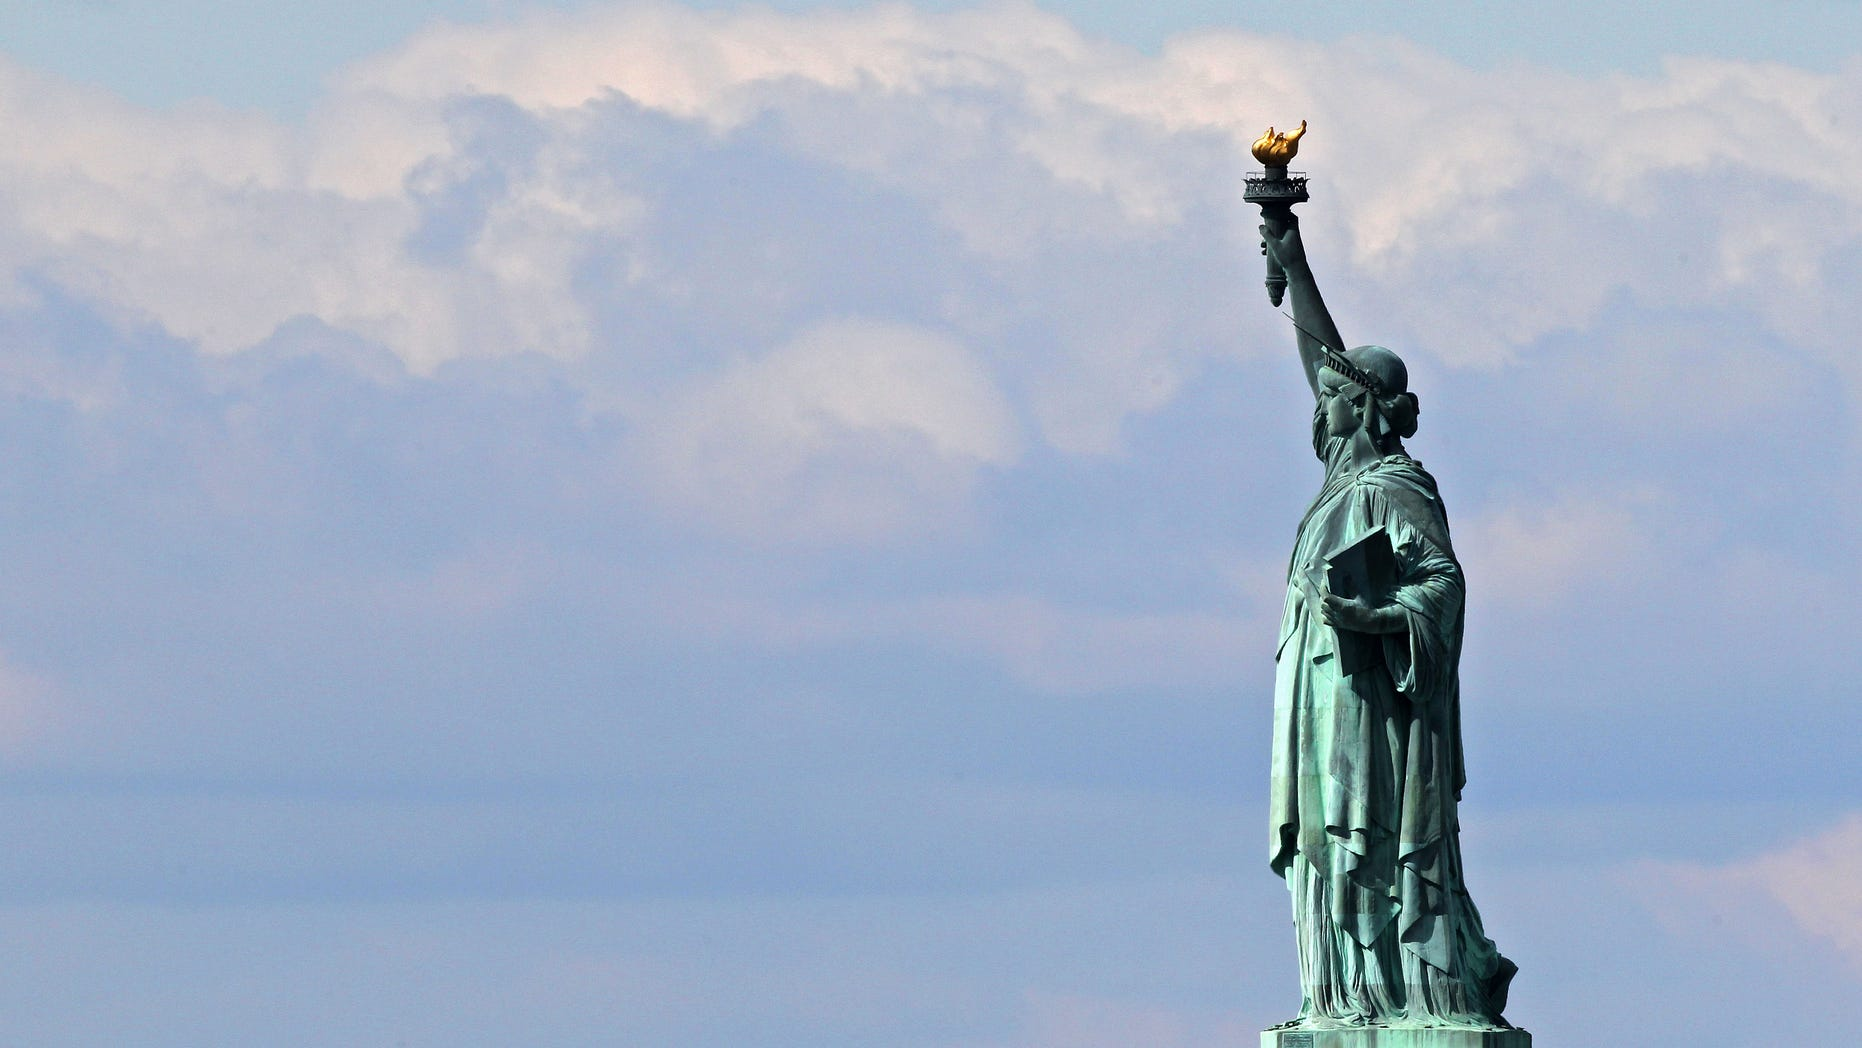 NEW YORK, NY - APRIL 27:  The Statue of Liberty is seen on April 27, 2012 in New York City.  (Photo by Michael Heiman/Getty Images)